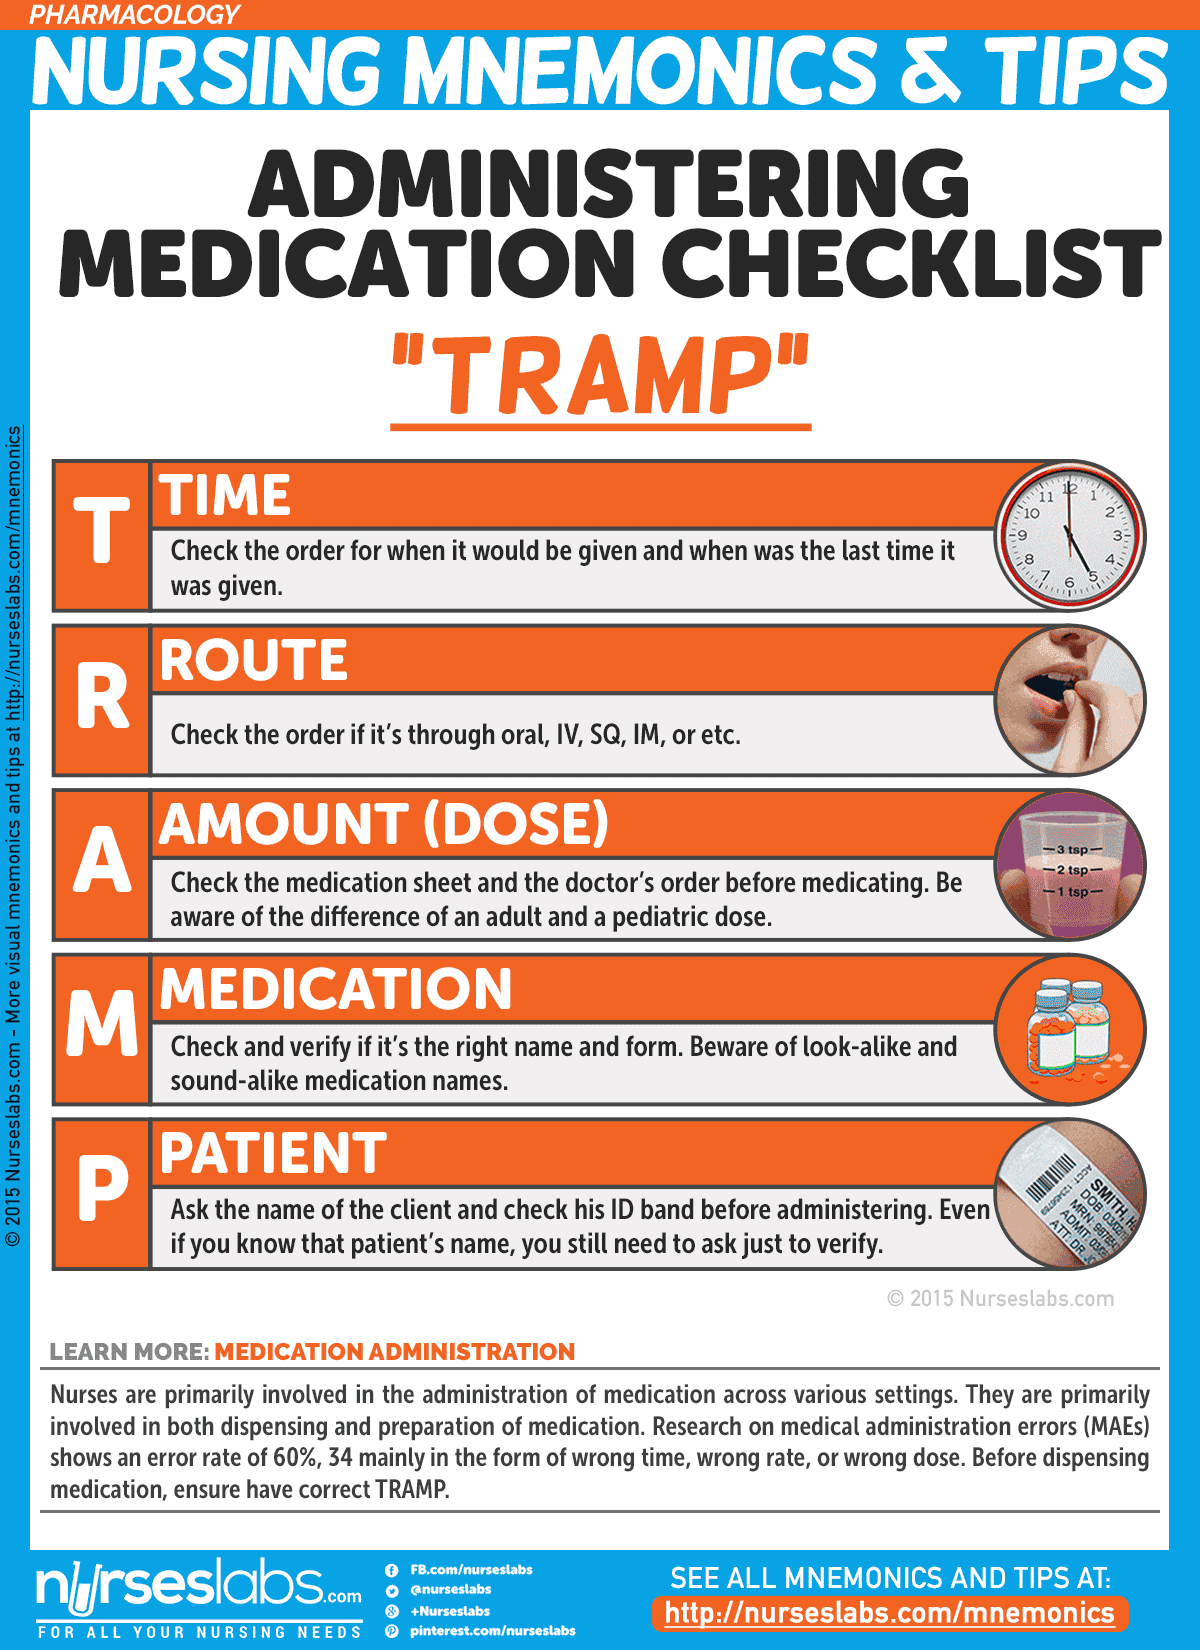 "Medication Administration Checklist: ""TRAMP"" Nursing Mnemonics and Tips"